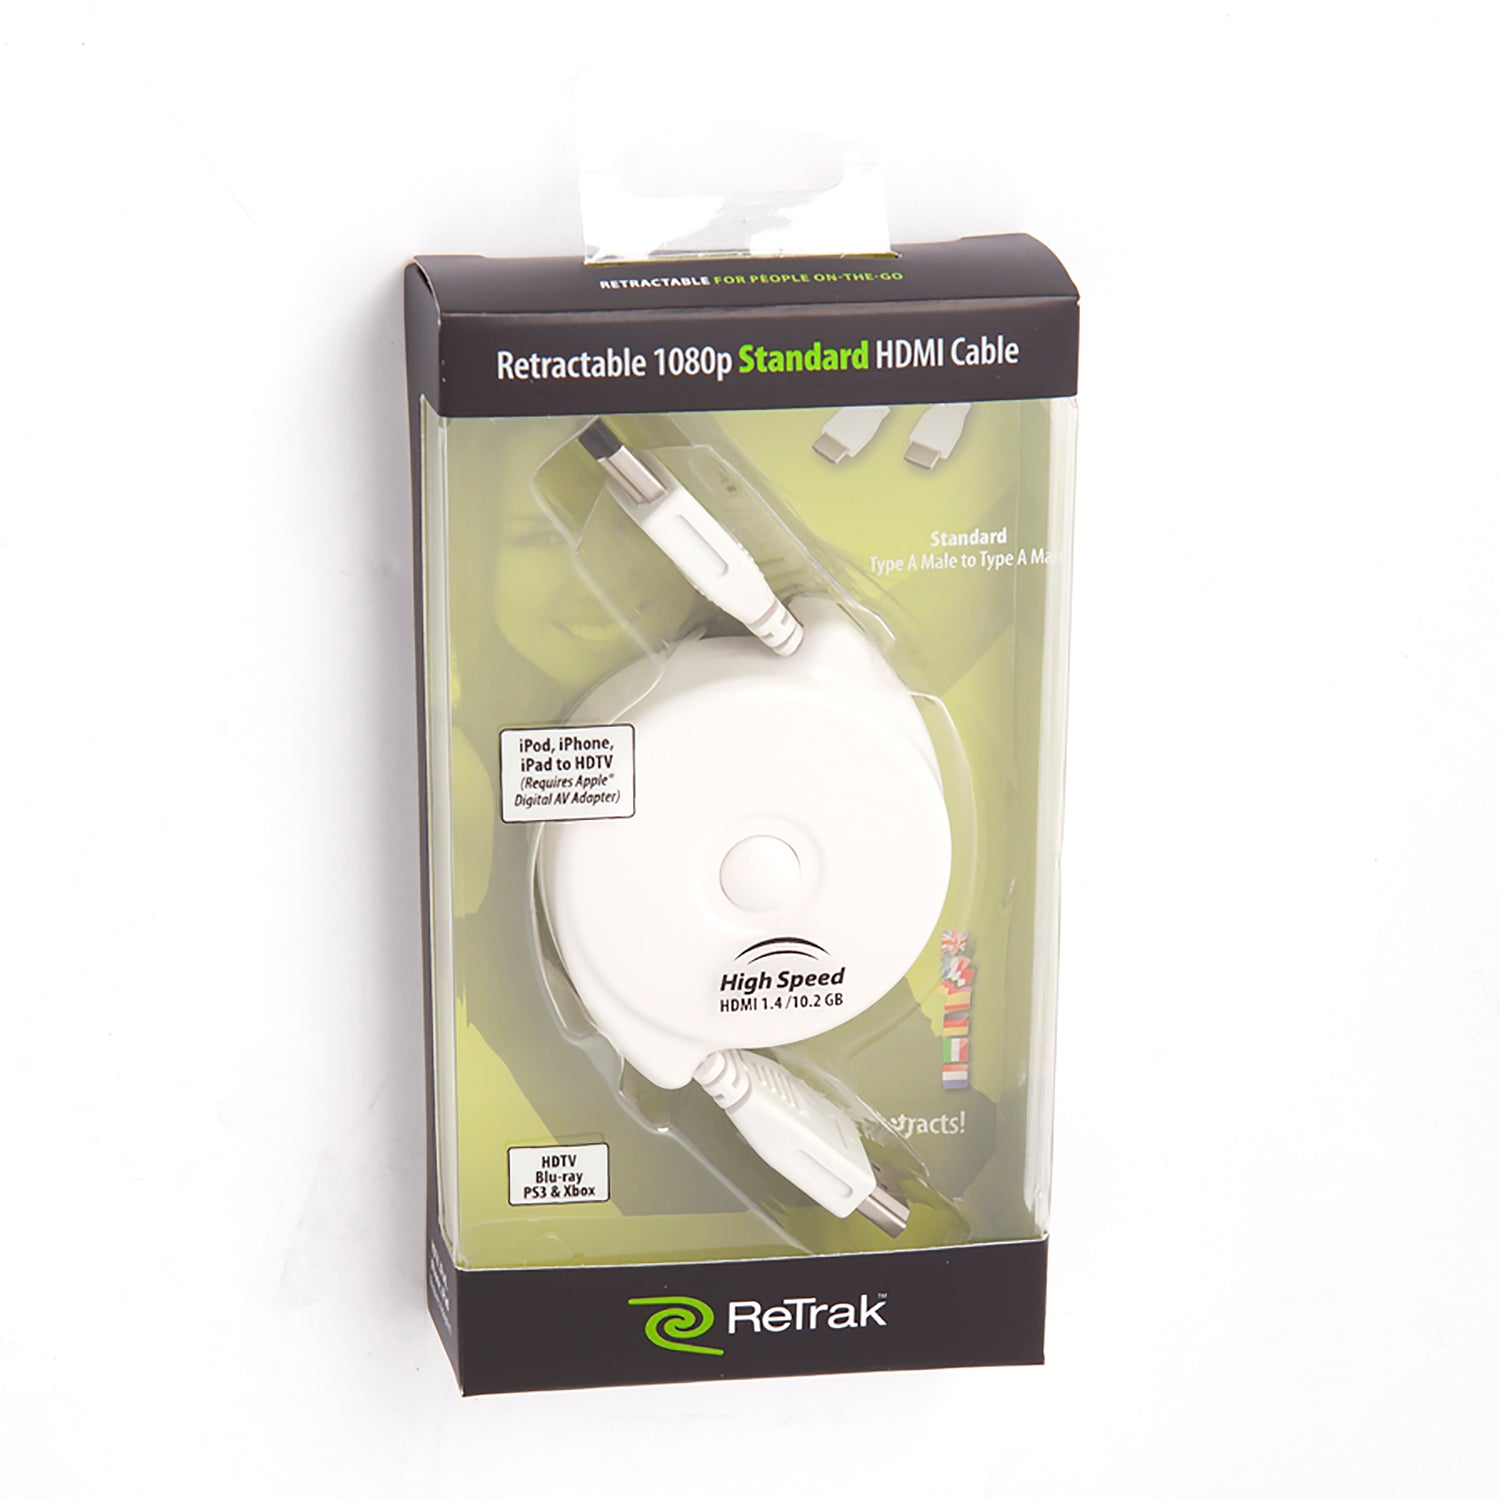 Retractable HDMI Cable | HDMI Cord for 1080p HDTV | Type A to Type A | White